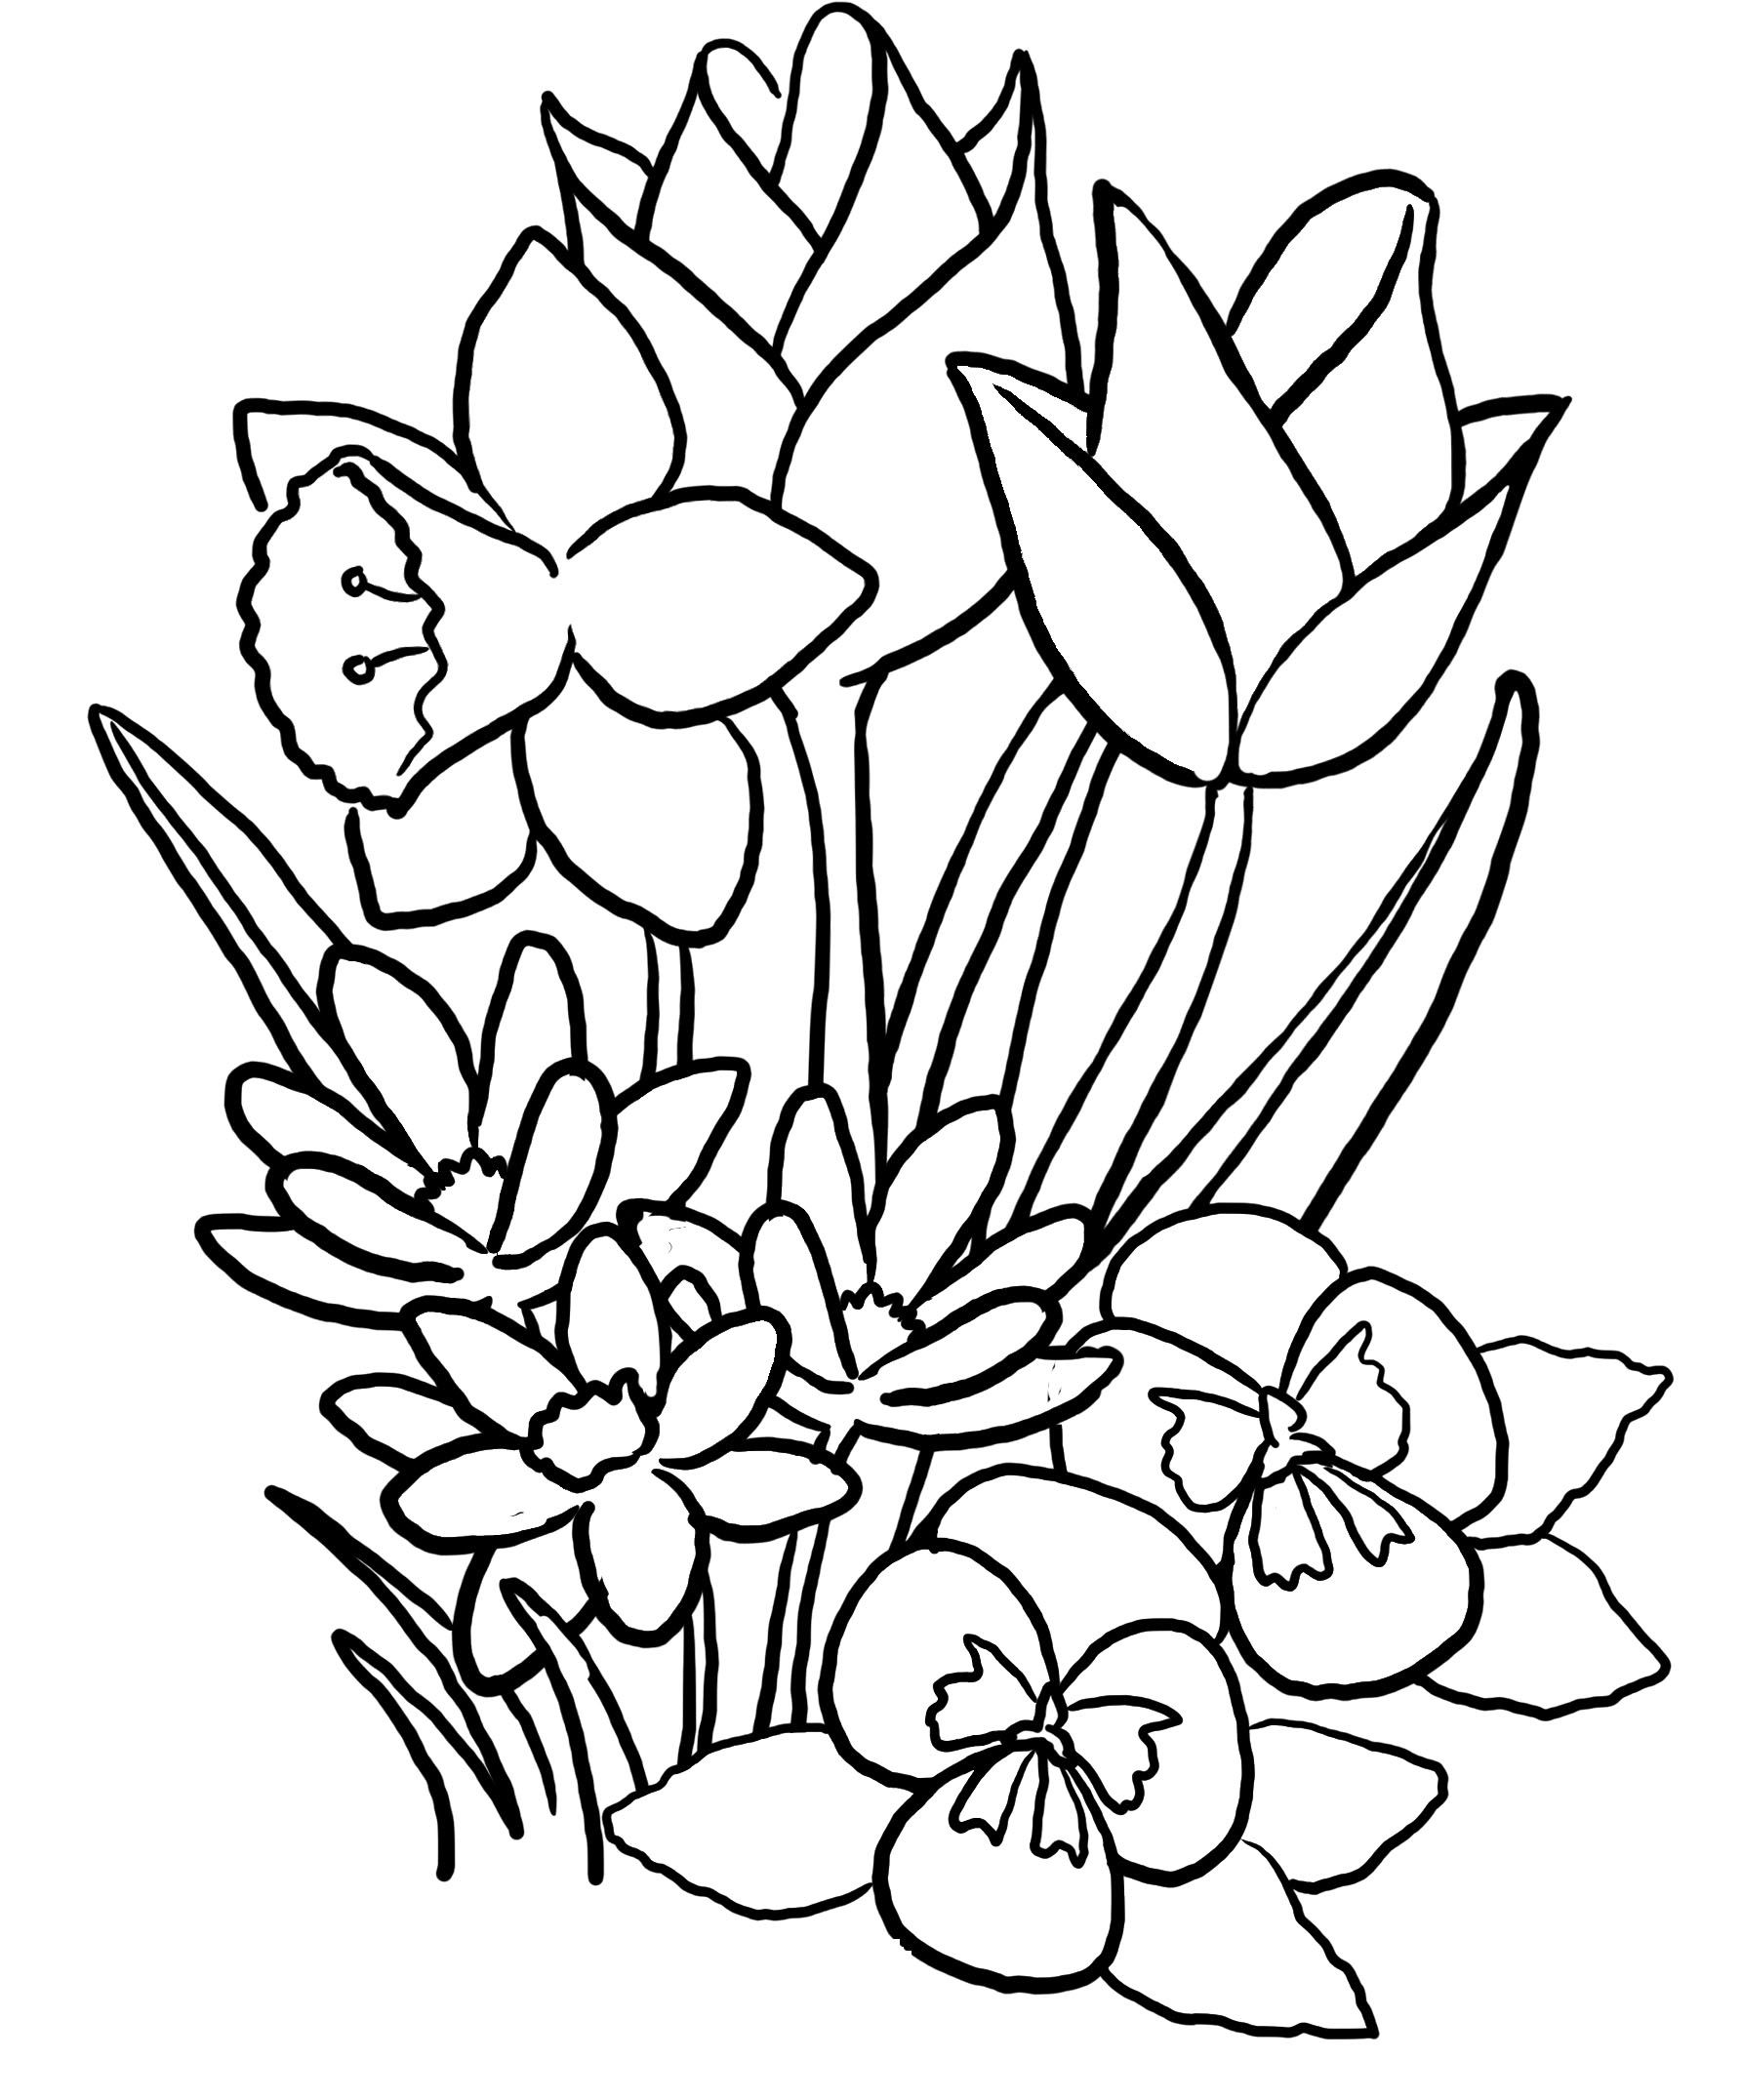 1785x2152 Stunning Spring Coloring Pages Coloringsuitecom Image For Tulip